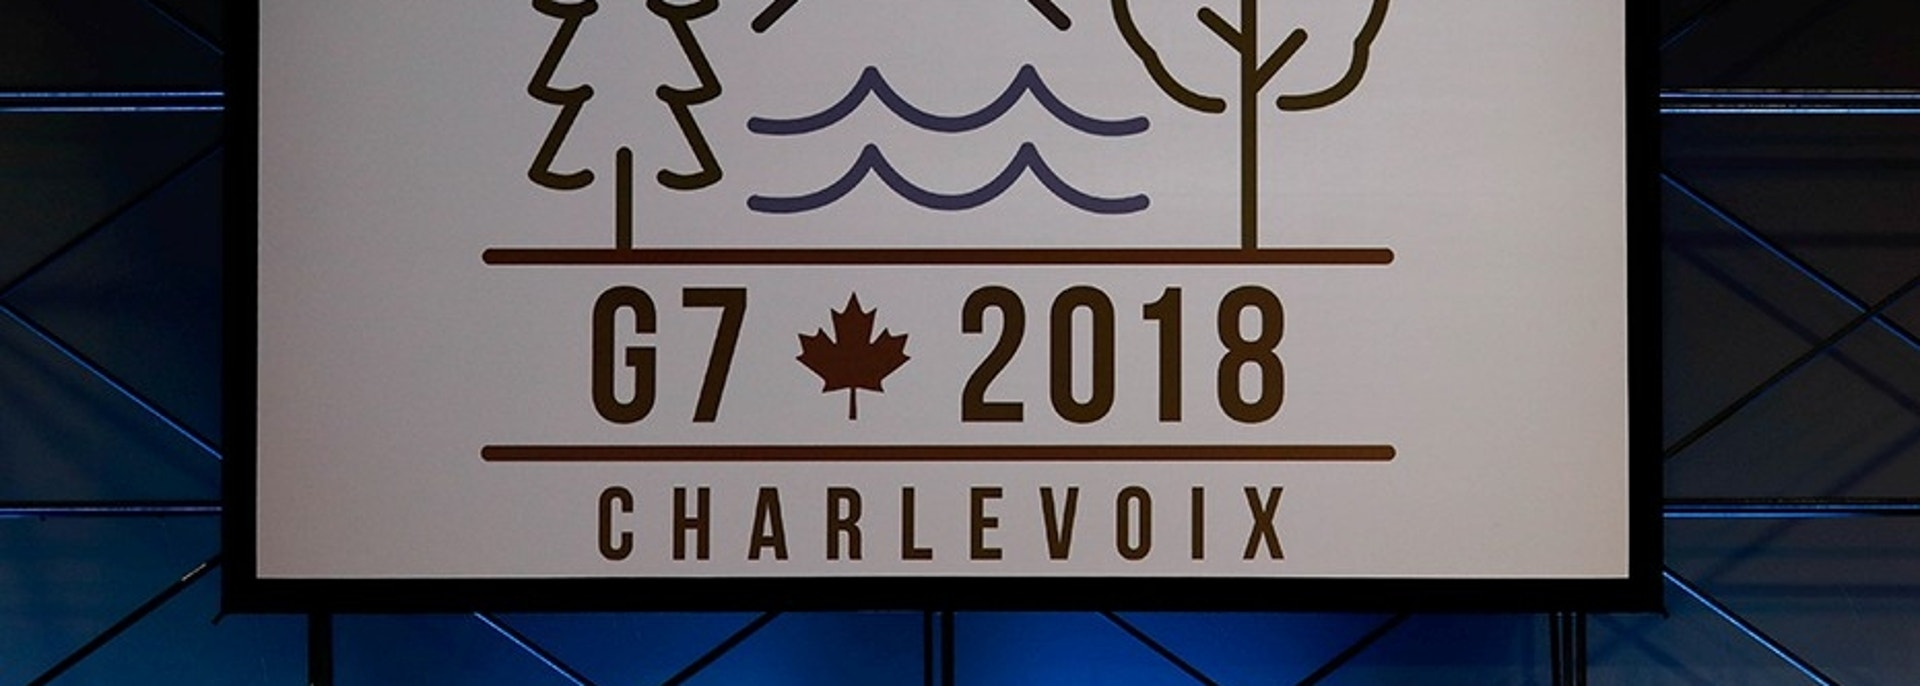 A Canadian mounted police officer walks past the Charlevoix G7 logo at the main press center, ahead of G7 Summit in Quebec, Canada June 6, 2018. REUTERS/Yves Herman - RC1D00D1D4F0